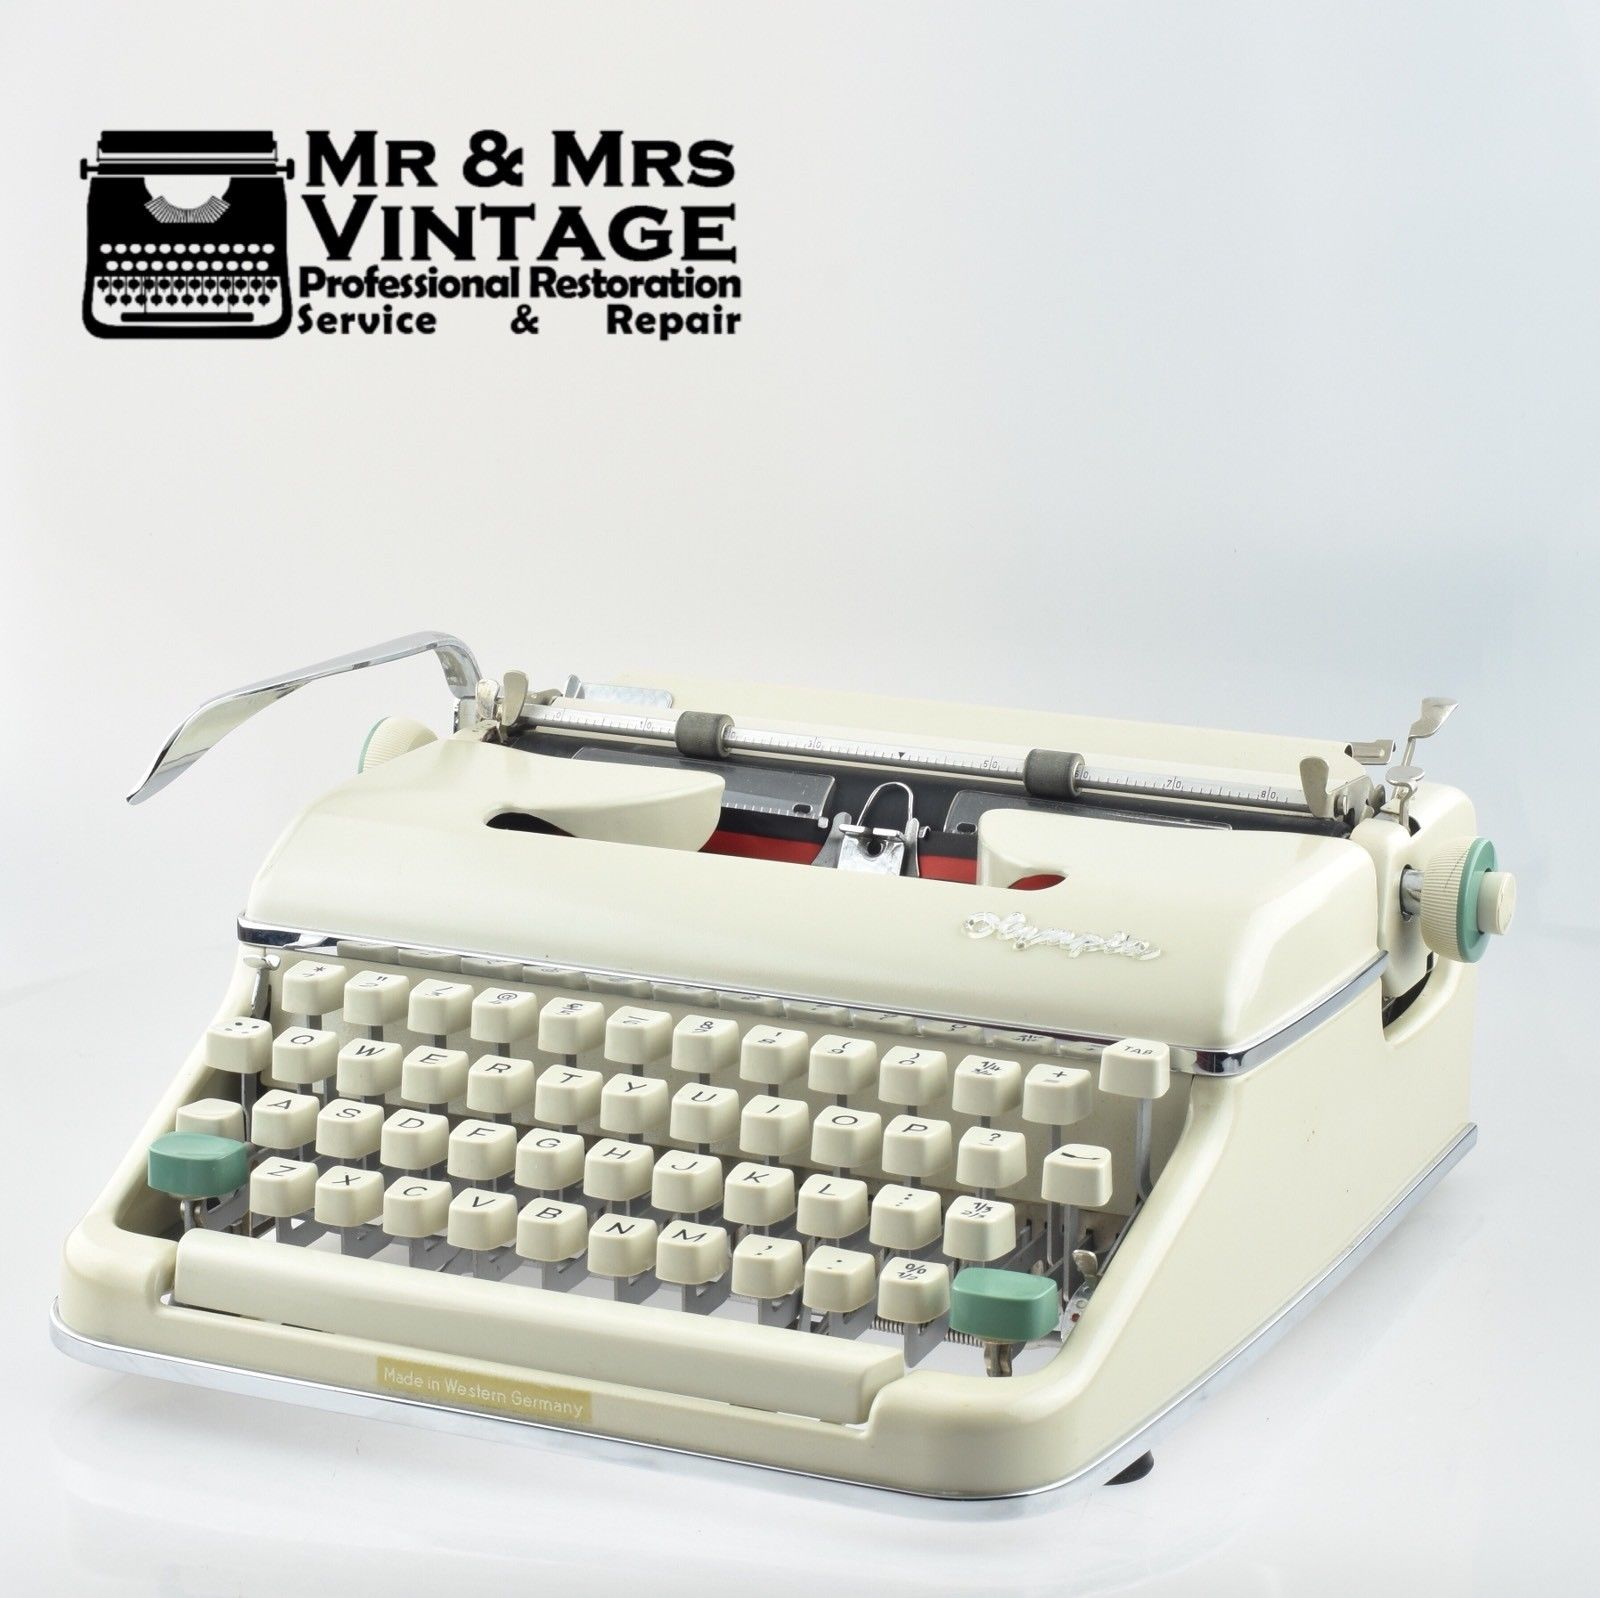 Off White Olympia SM5 Typewriter with PICA Typeface